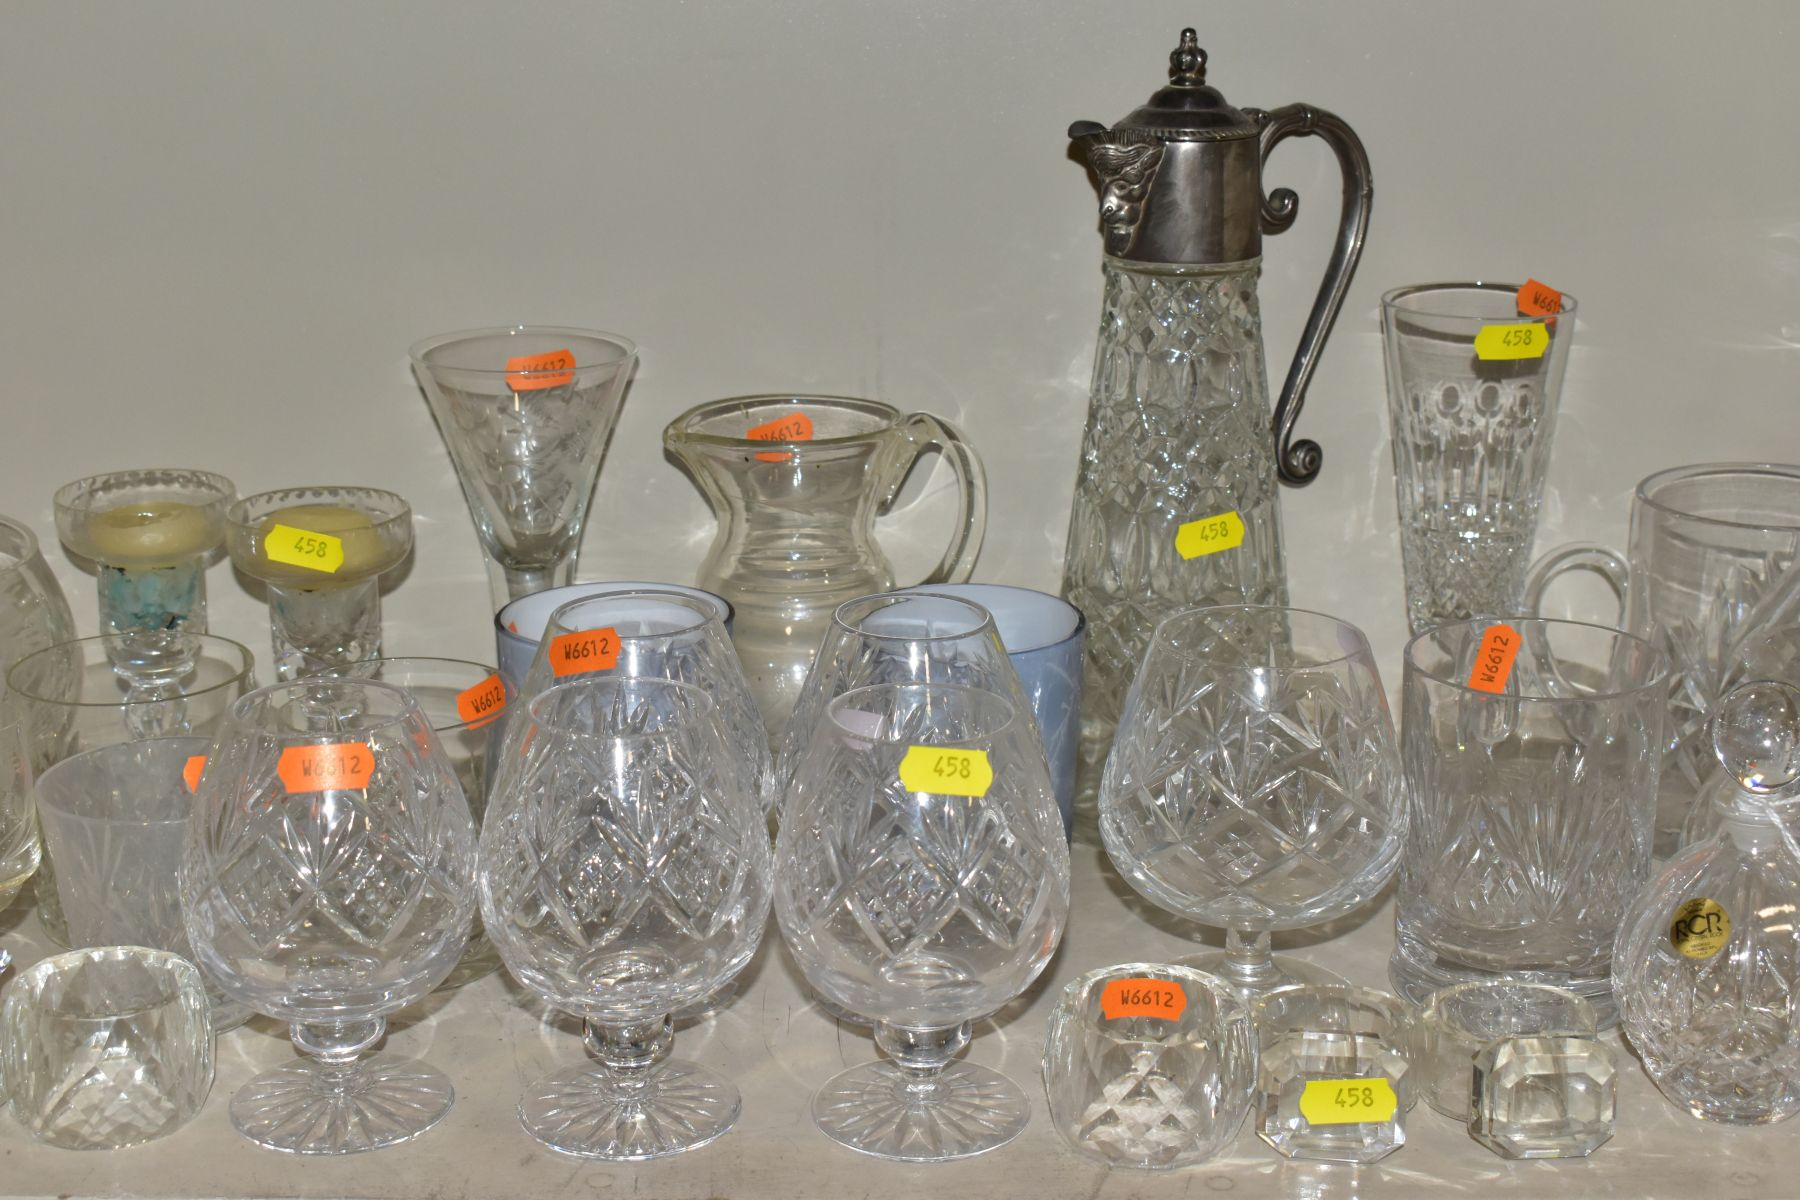 A SMALL QUANTITY OF CLEAR AND COLOURED GLASSWARE, including an Edinburgh Crystal vase, height 25.